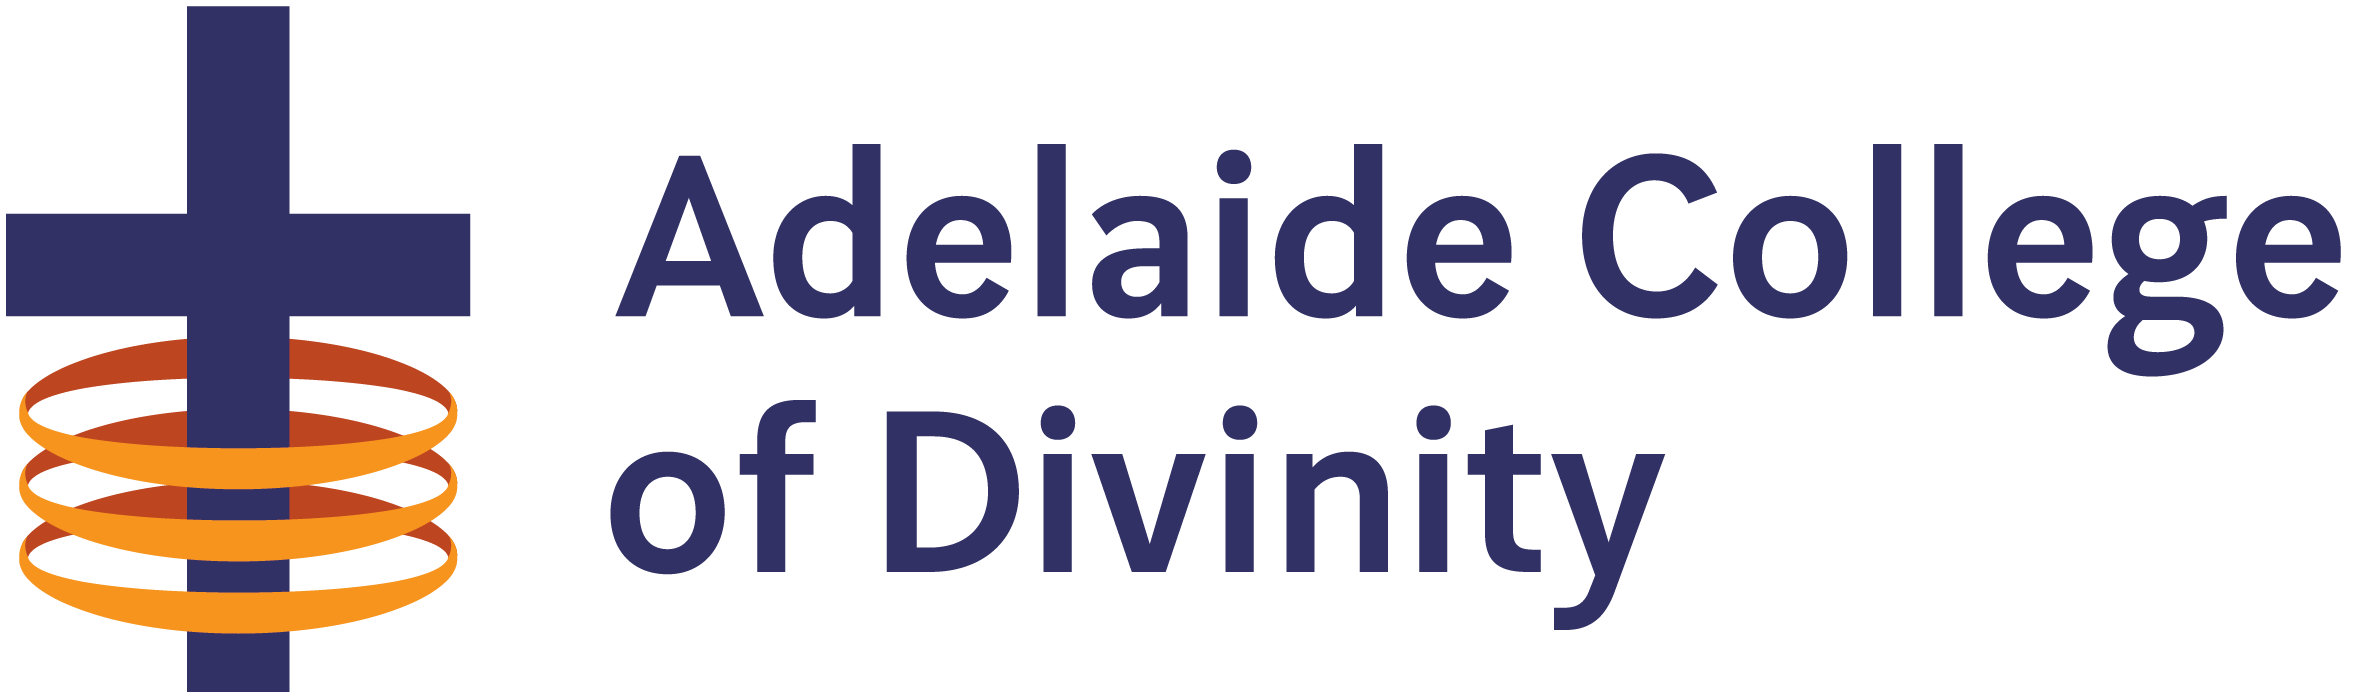 Adelaide College of Divinity